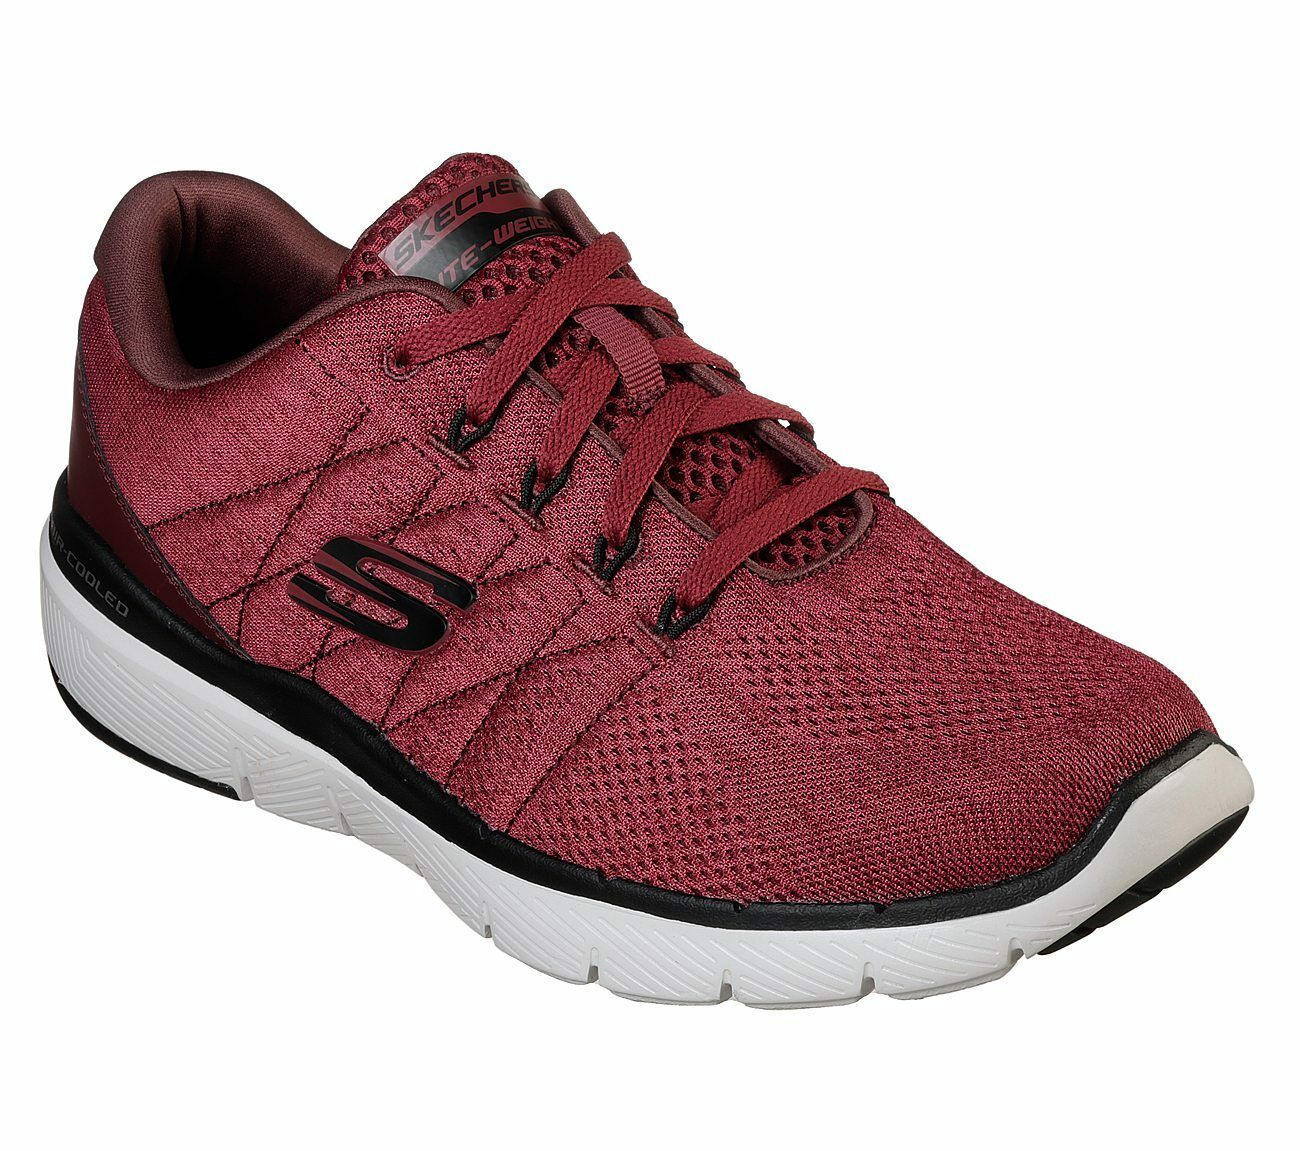 Skechers Burgundy shoes Men Memory Foam Mesh Sport Comfort Casual 52957